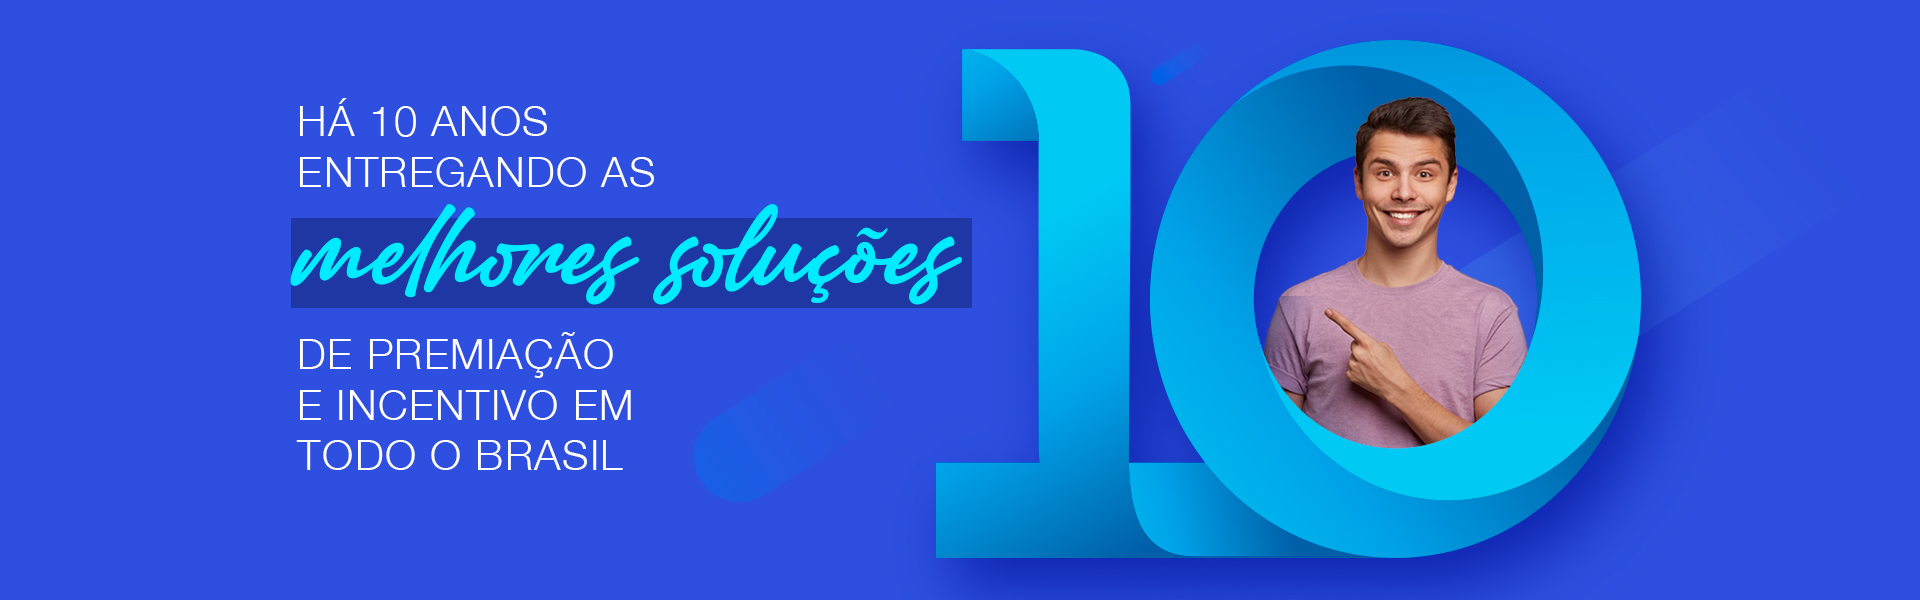 BANNER_incentivale_10anos_2